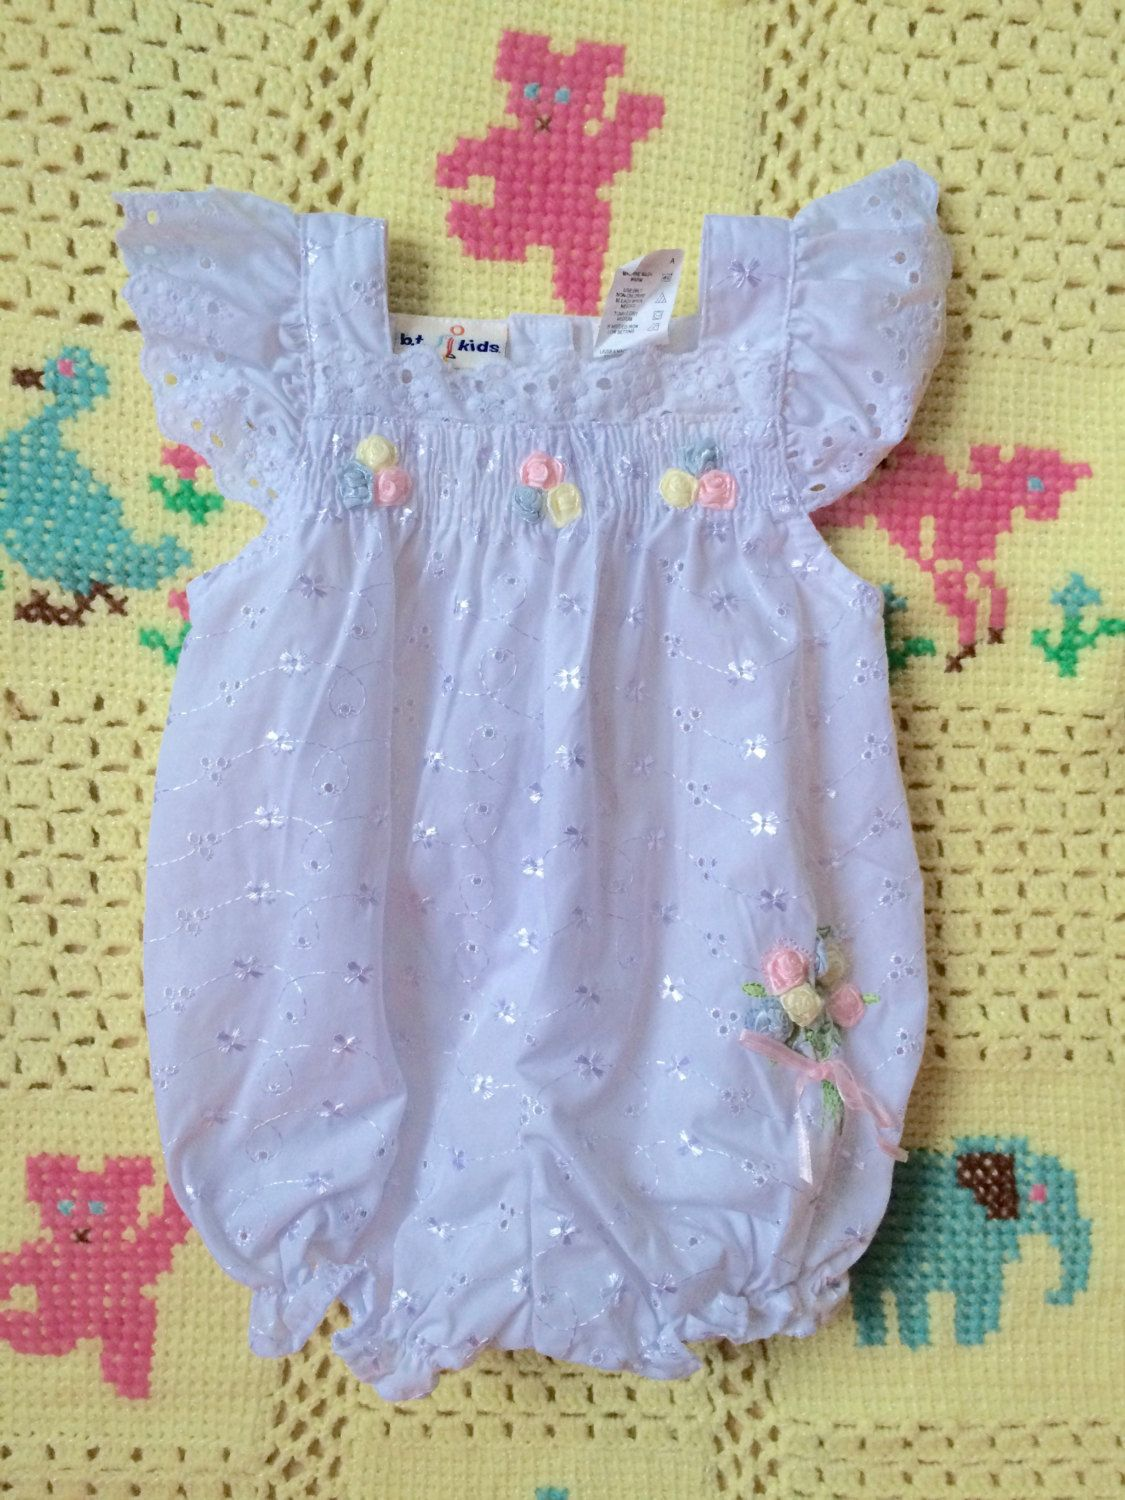 a31df268a77f Eyelet Lace Romper 3 6 Months by lishyloo on Etsy